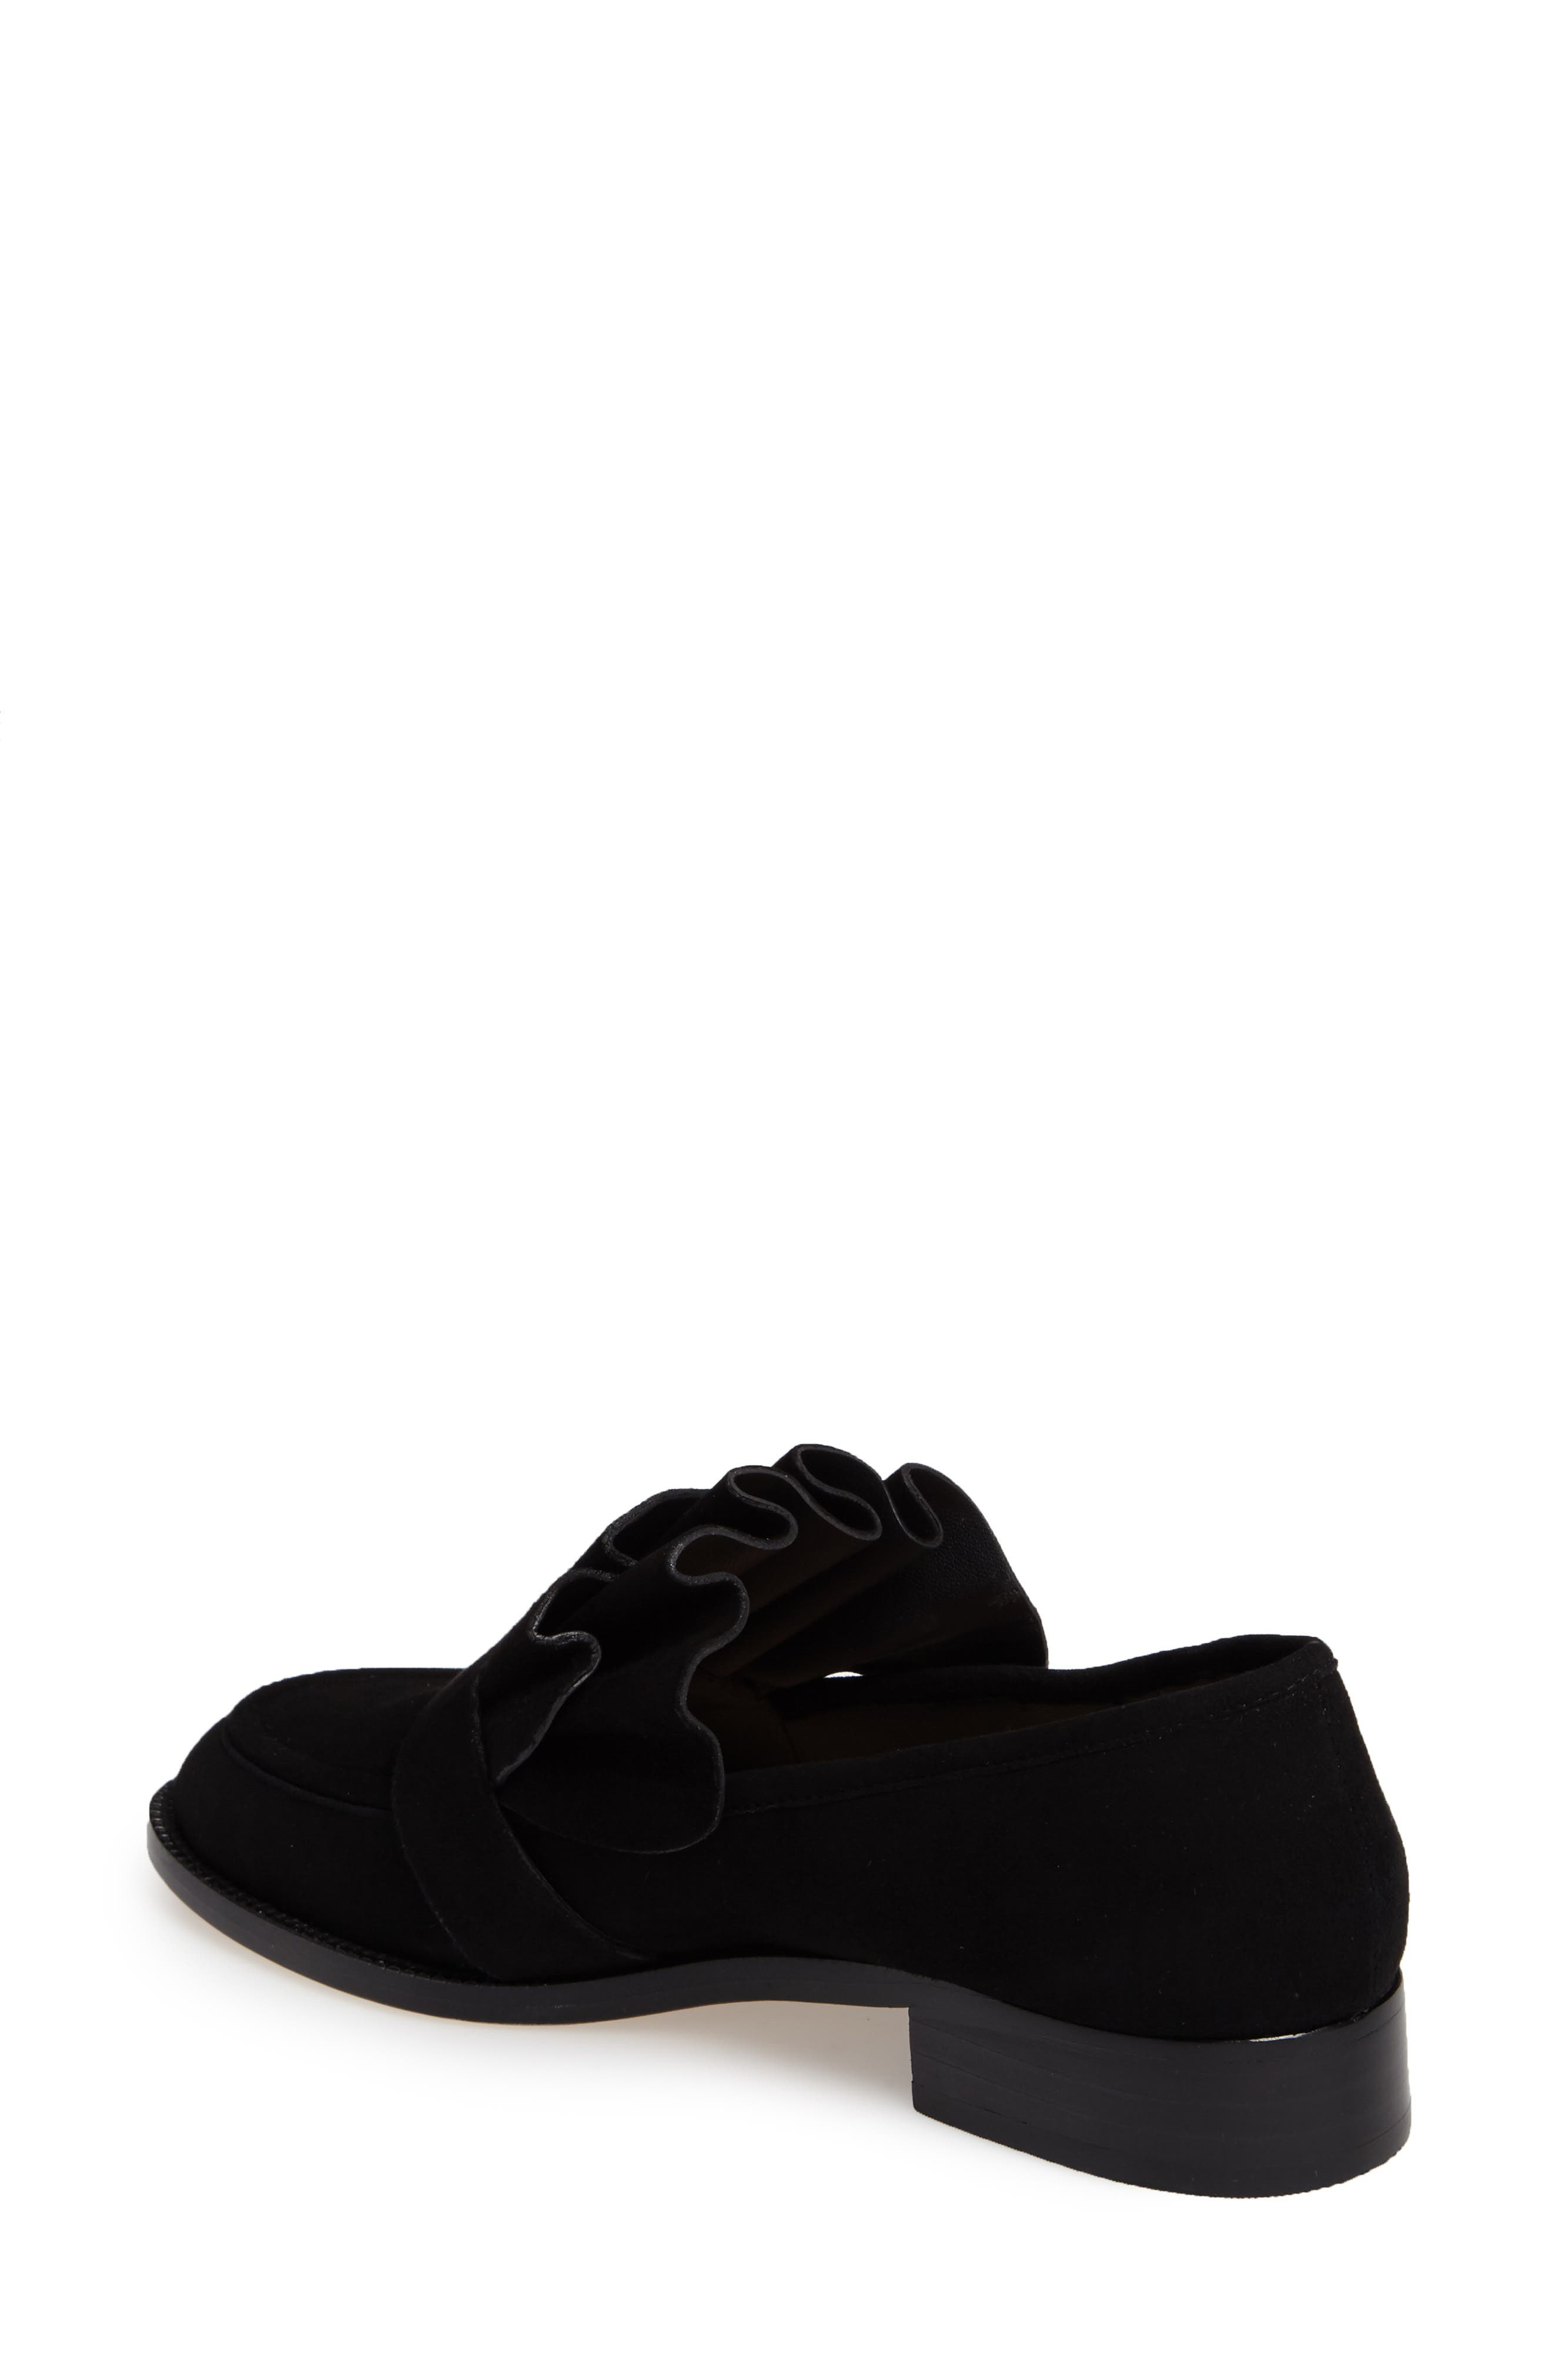 Tenley Ruffled Loafer,                             Alternate thumbnail 6, color,